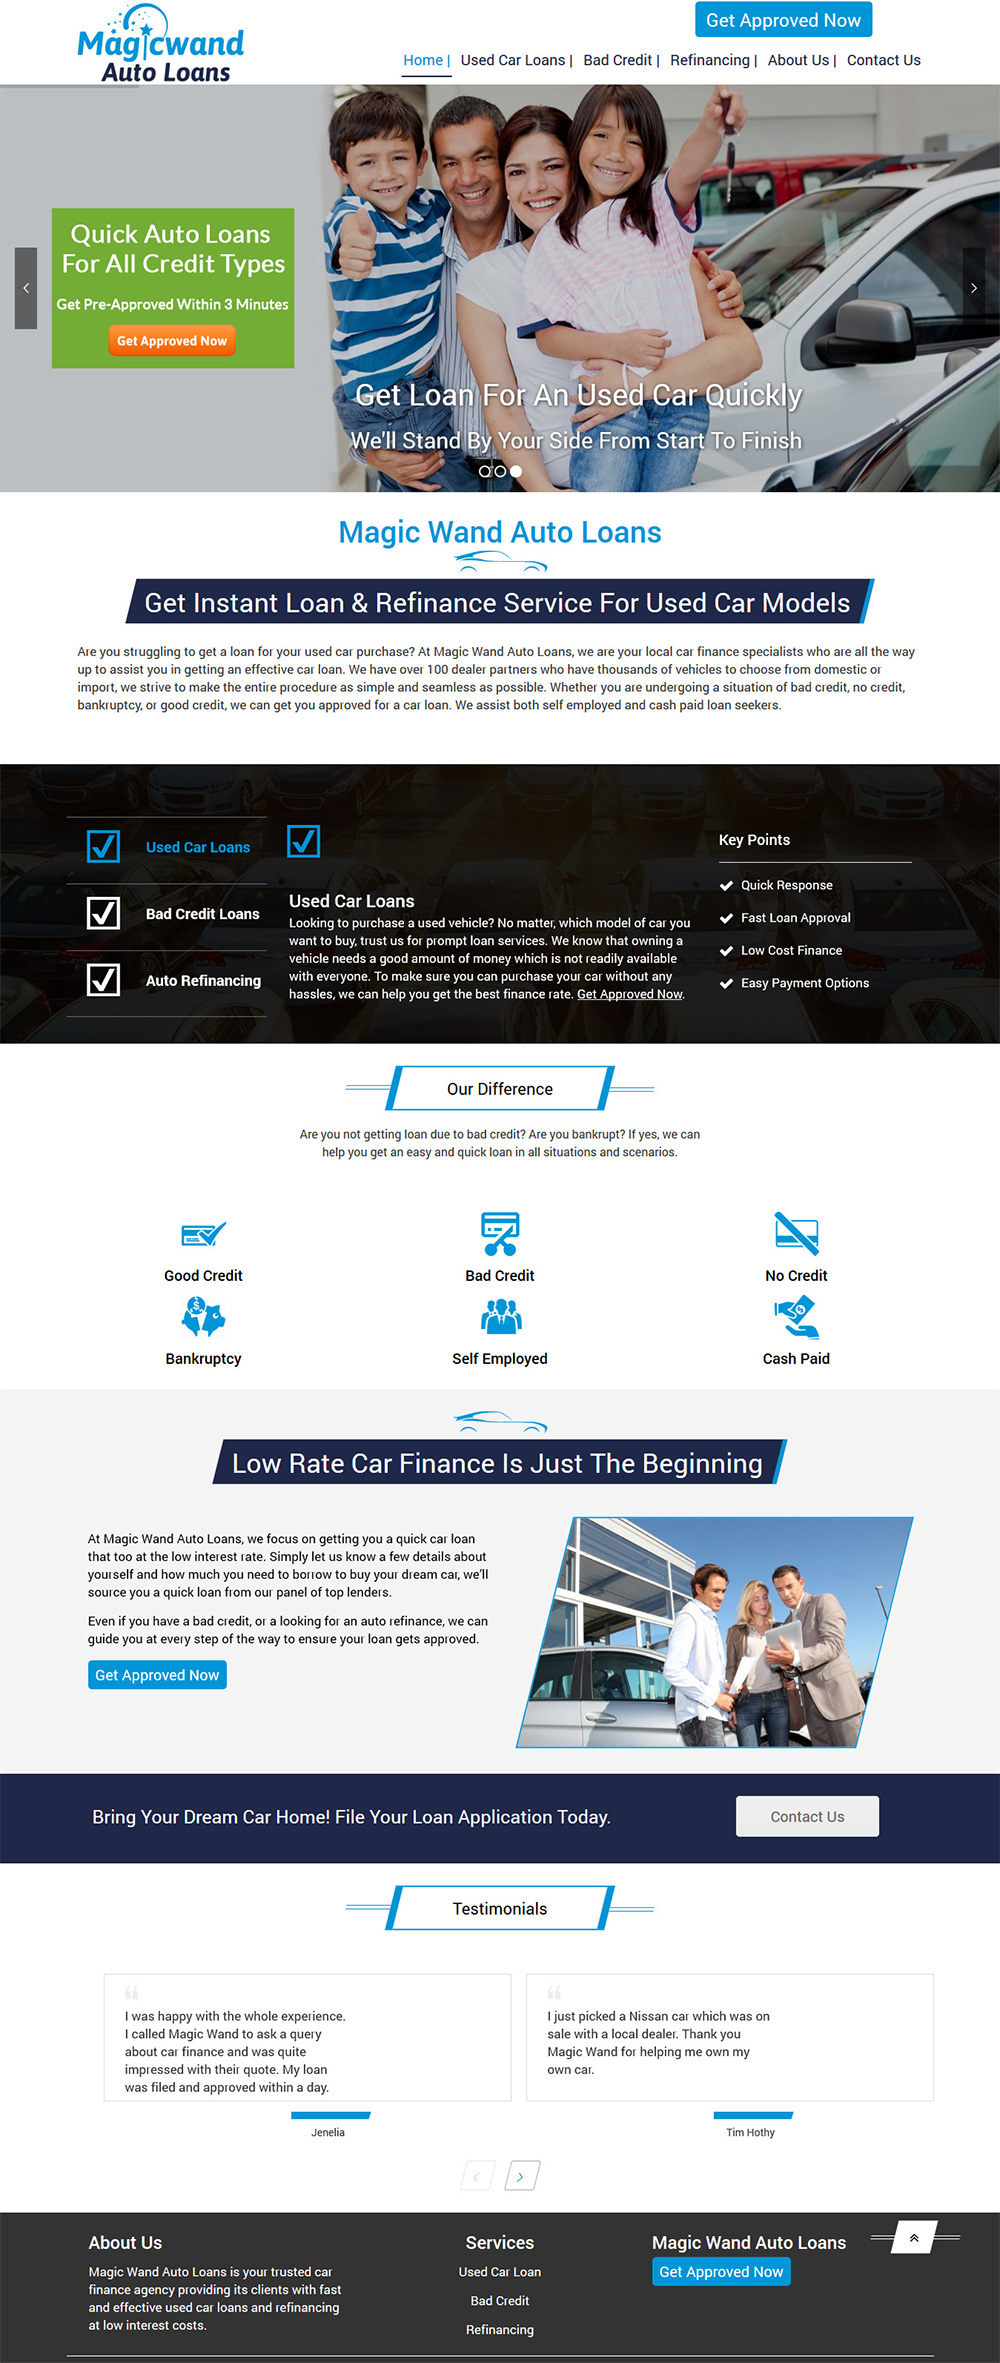 Web Development Mississauga